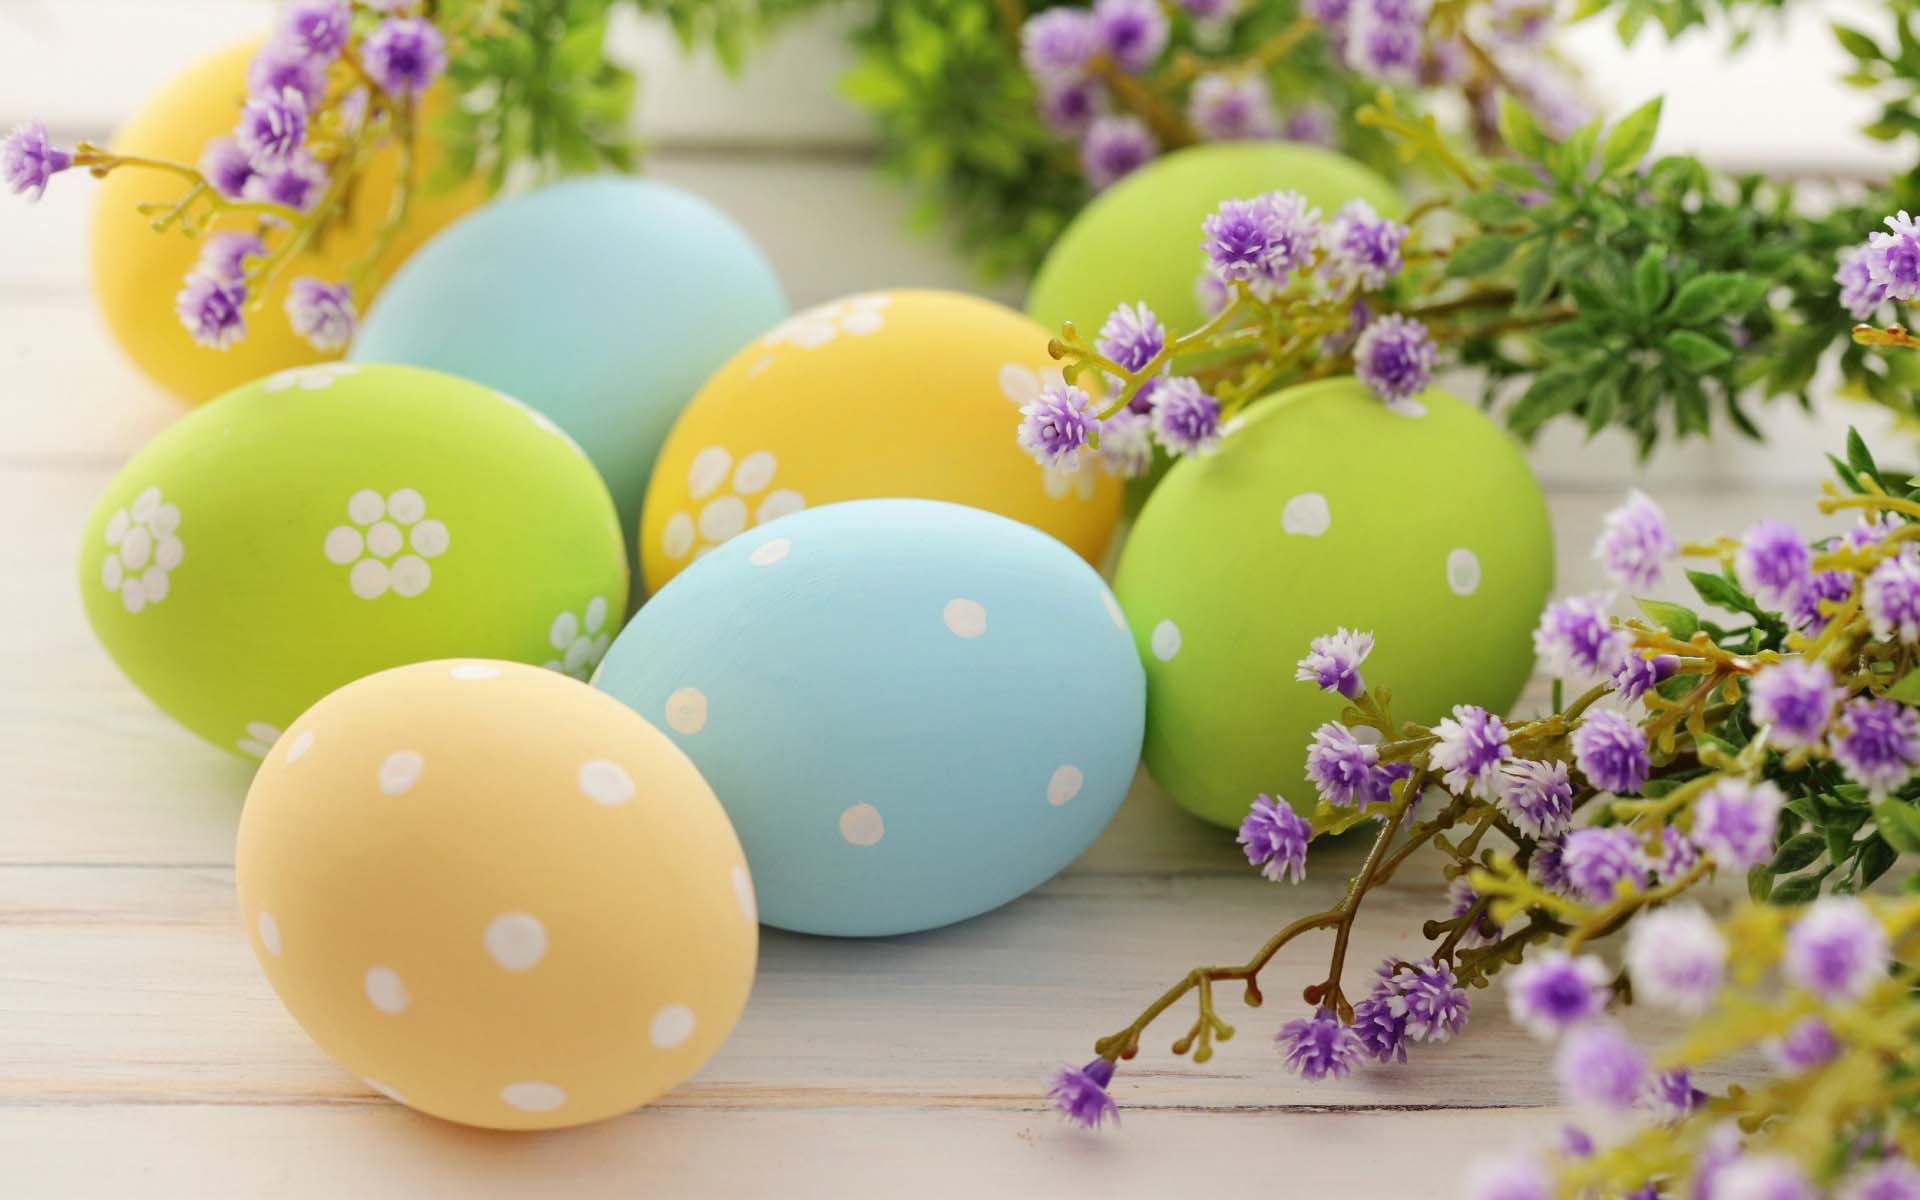 Happy Easter Hd Wallpapers HD Easter Images 1920x1200